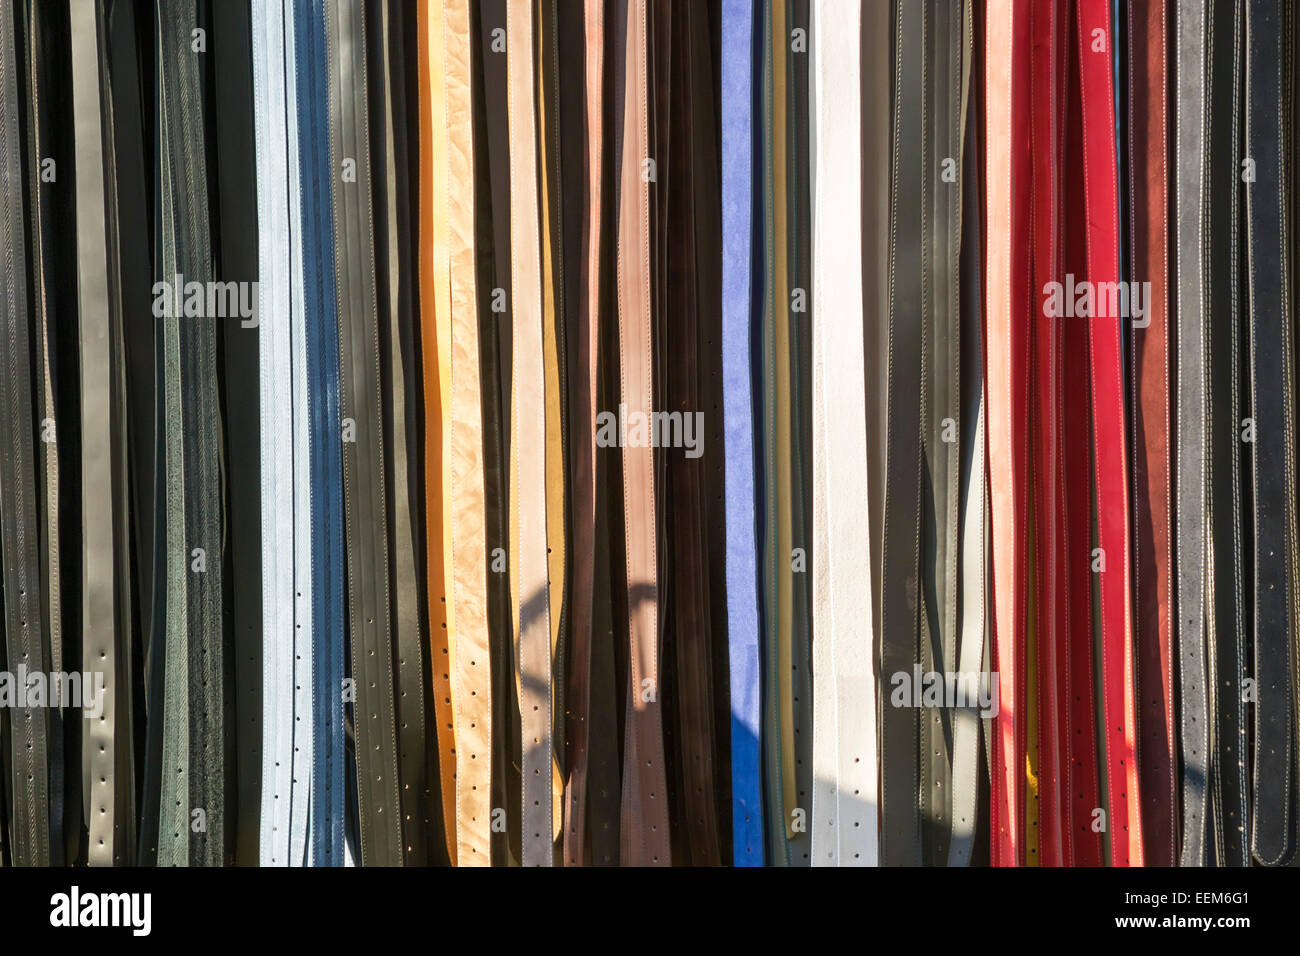 Fashionable leather belts for men and women, background - Stock Image